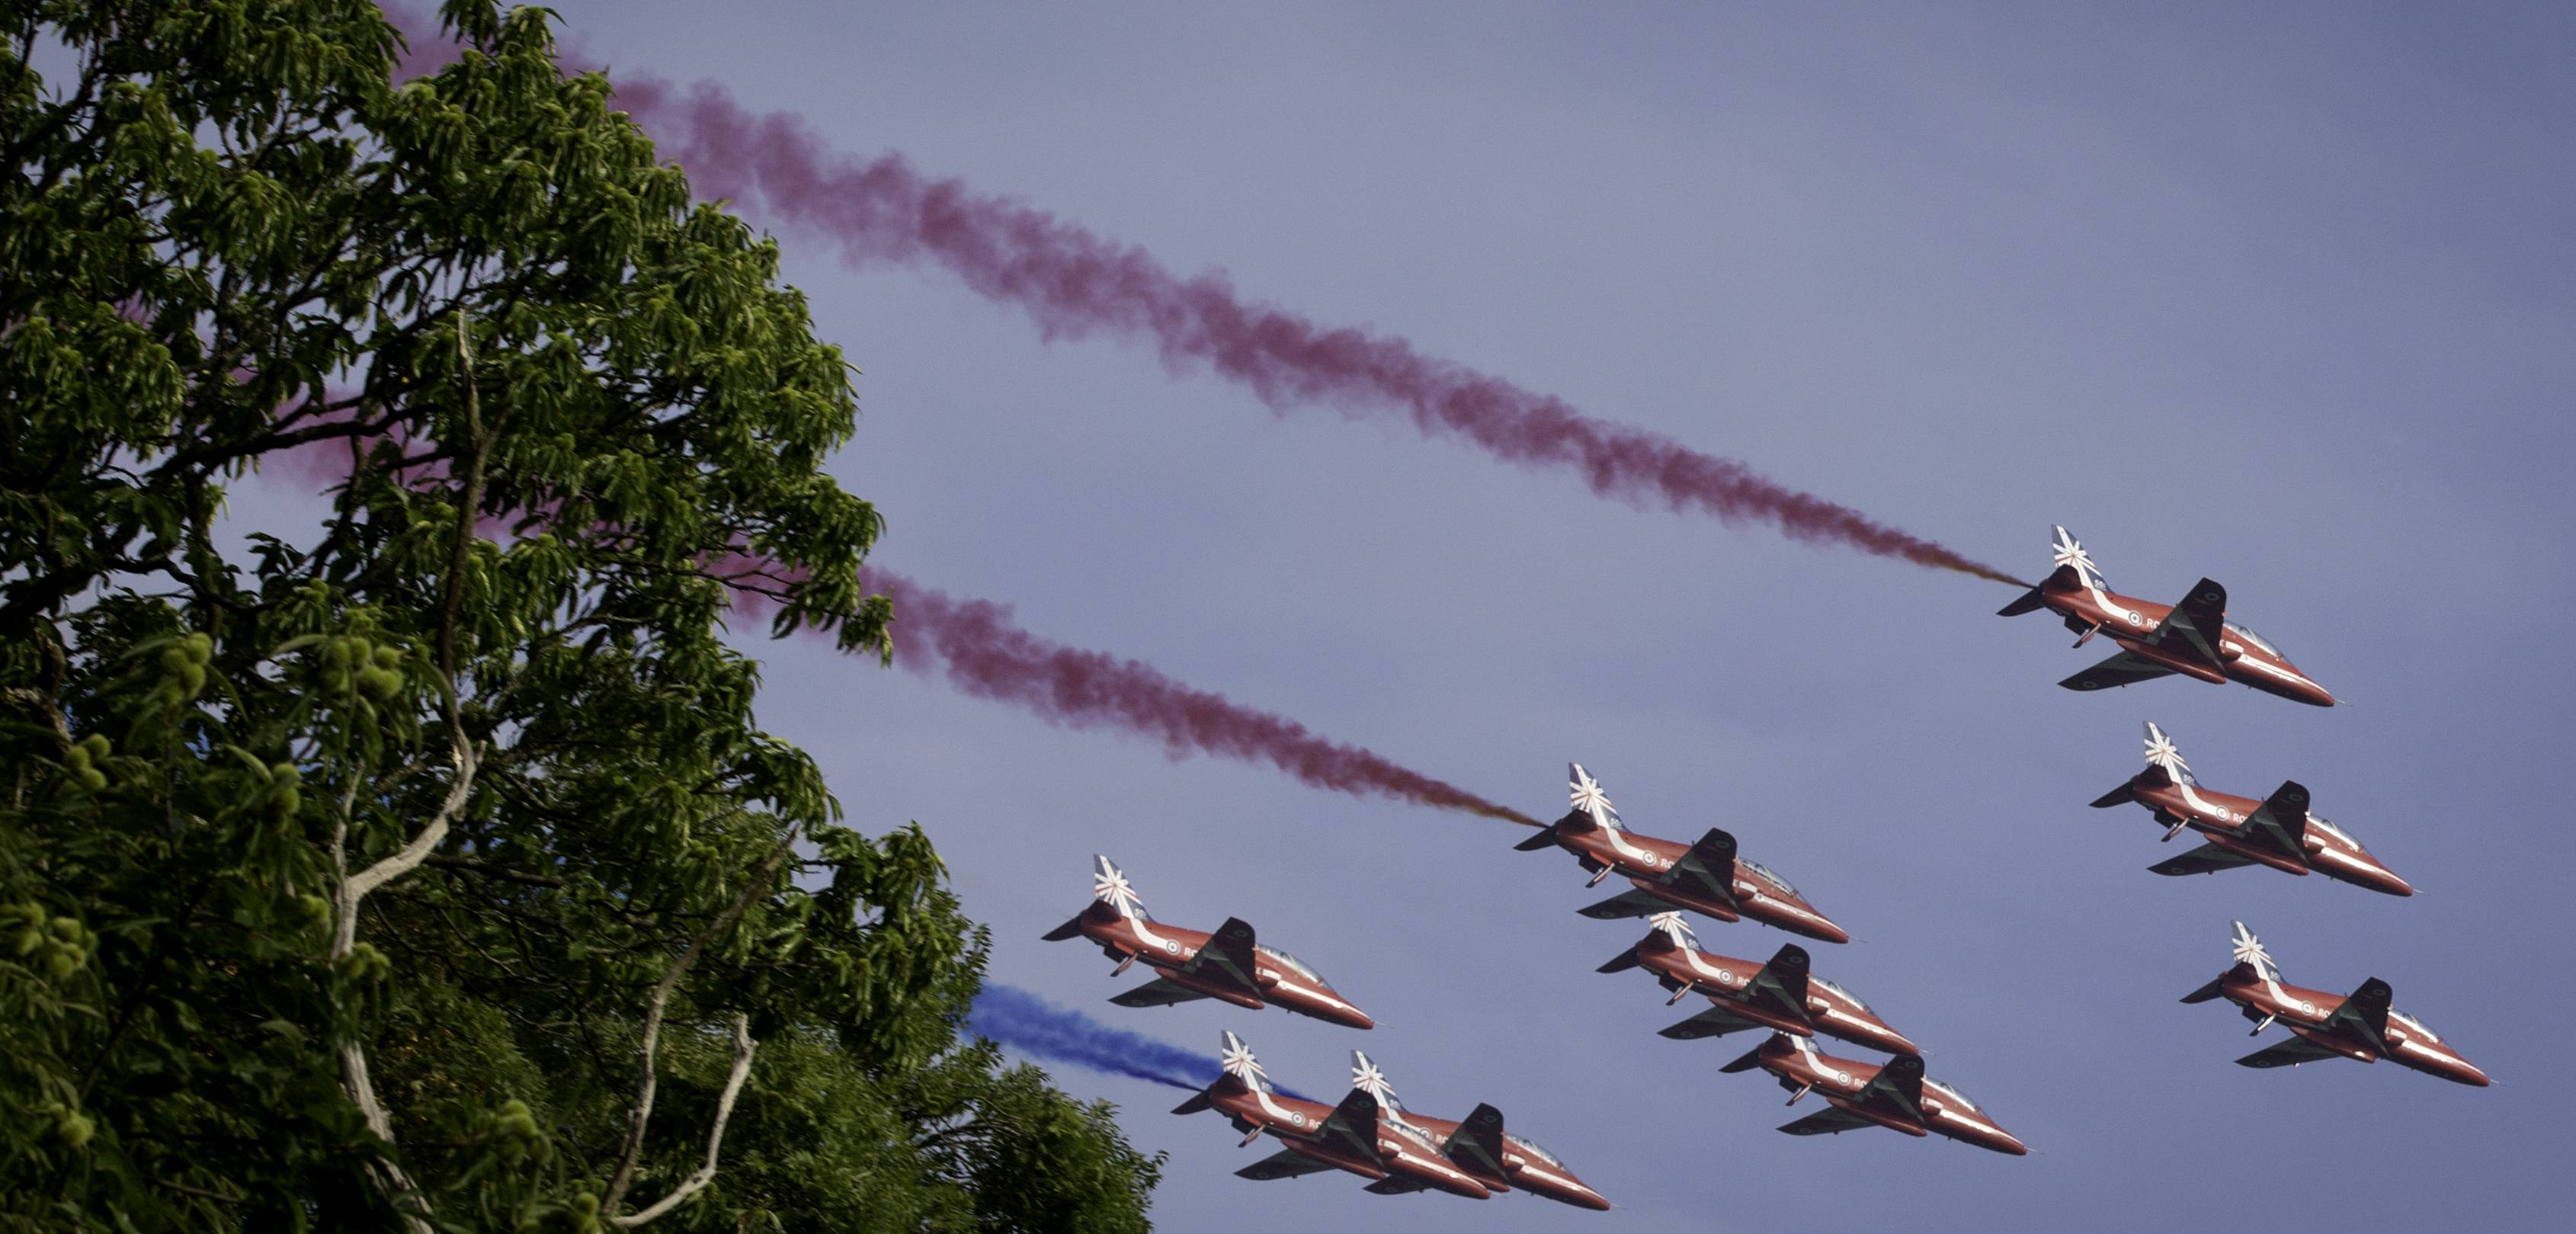 Military jets perform a flyover during a NATO summit at the Celtic Manor Resort in Newport, Wales on Friday, Sept. 5, 2014.